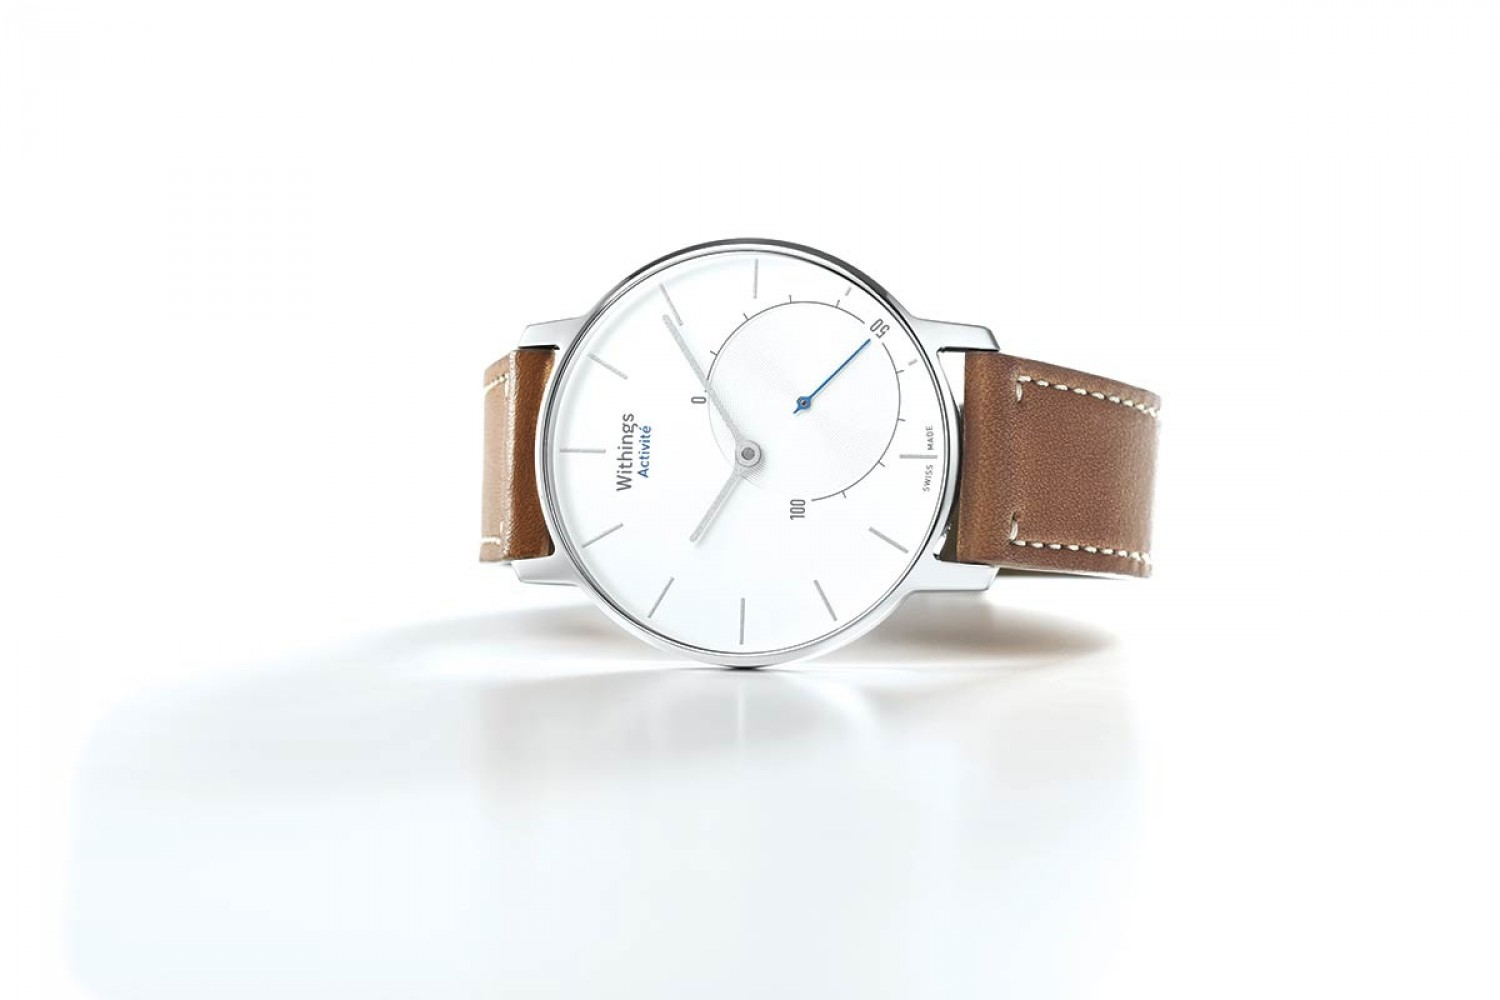 montre-connectee-argent-withings-3